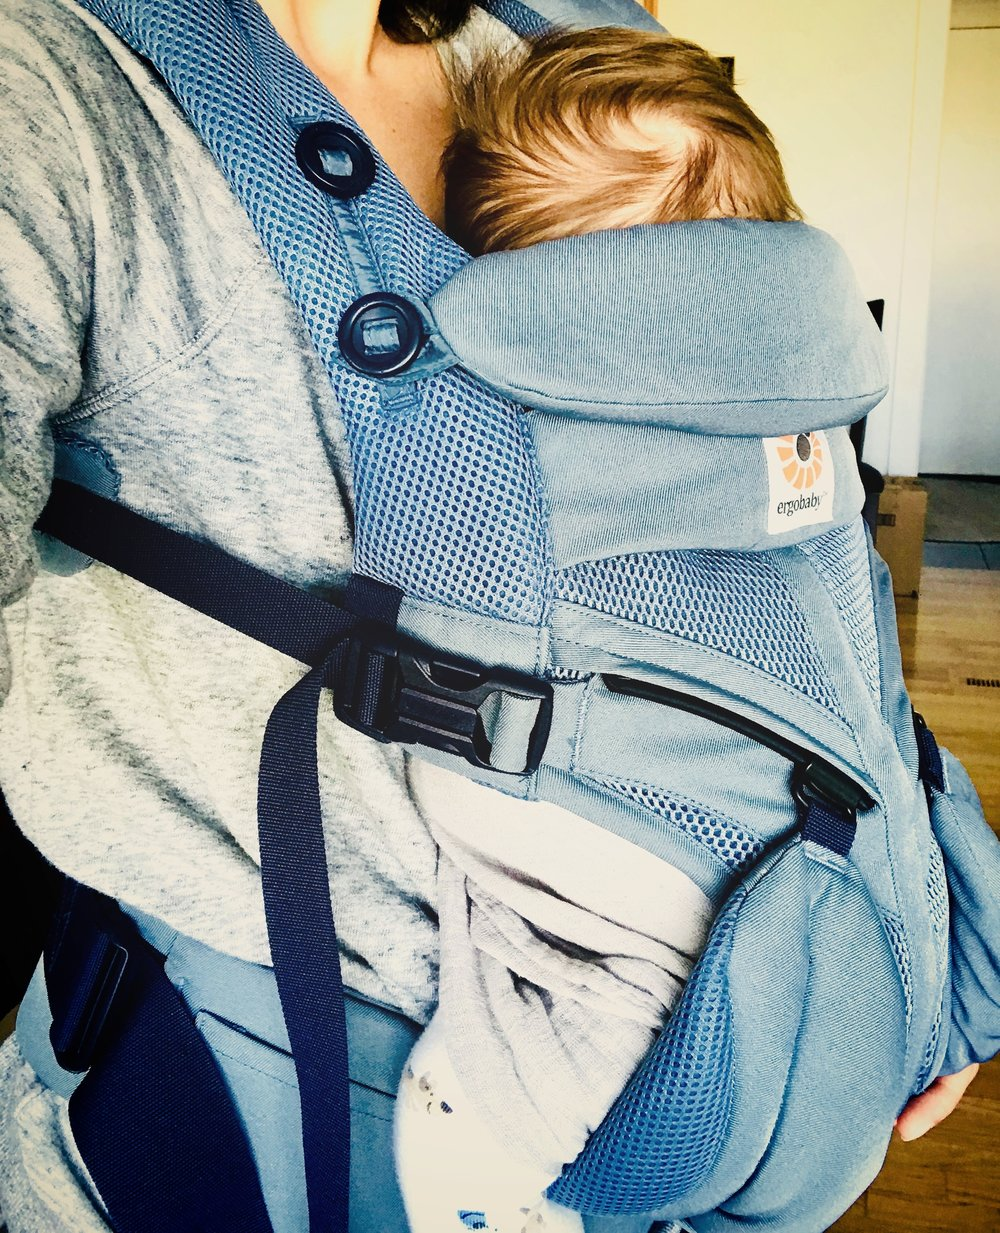 i love my ergobaby baby carrier so i can get things done!